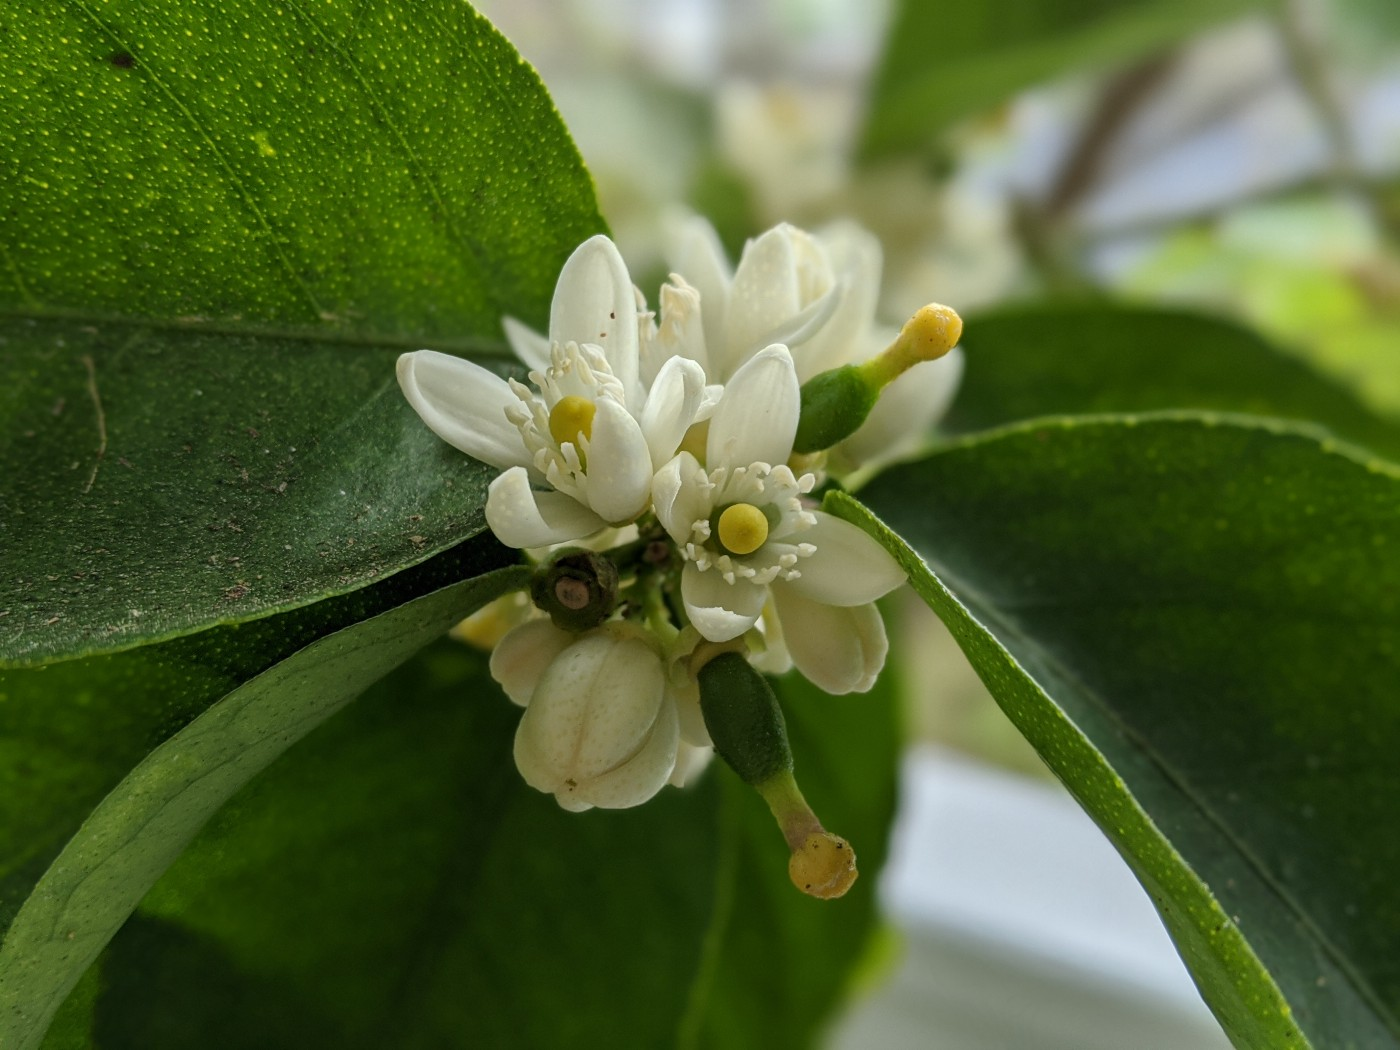 Lime tree with flowers and young limes